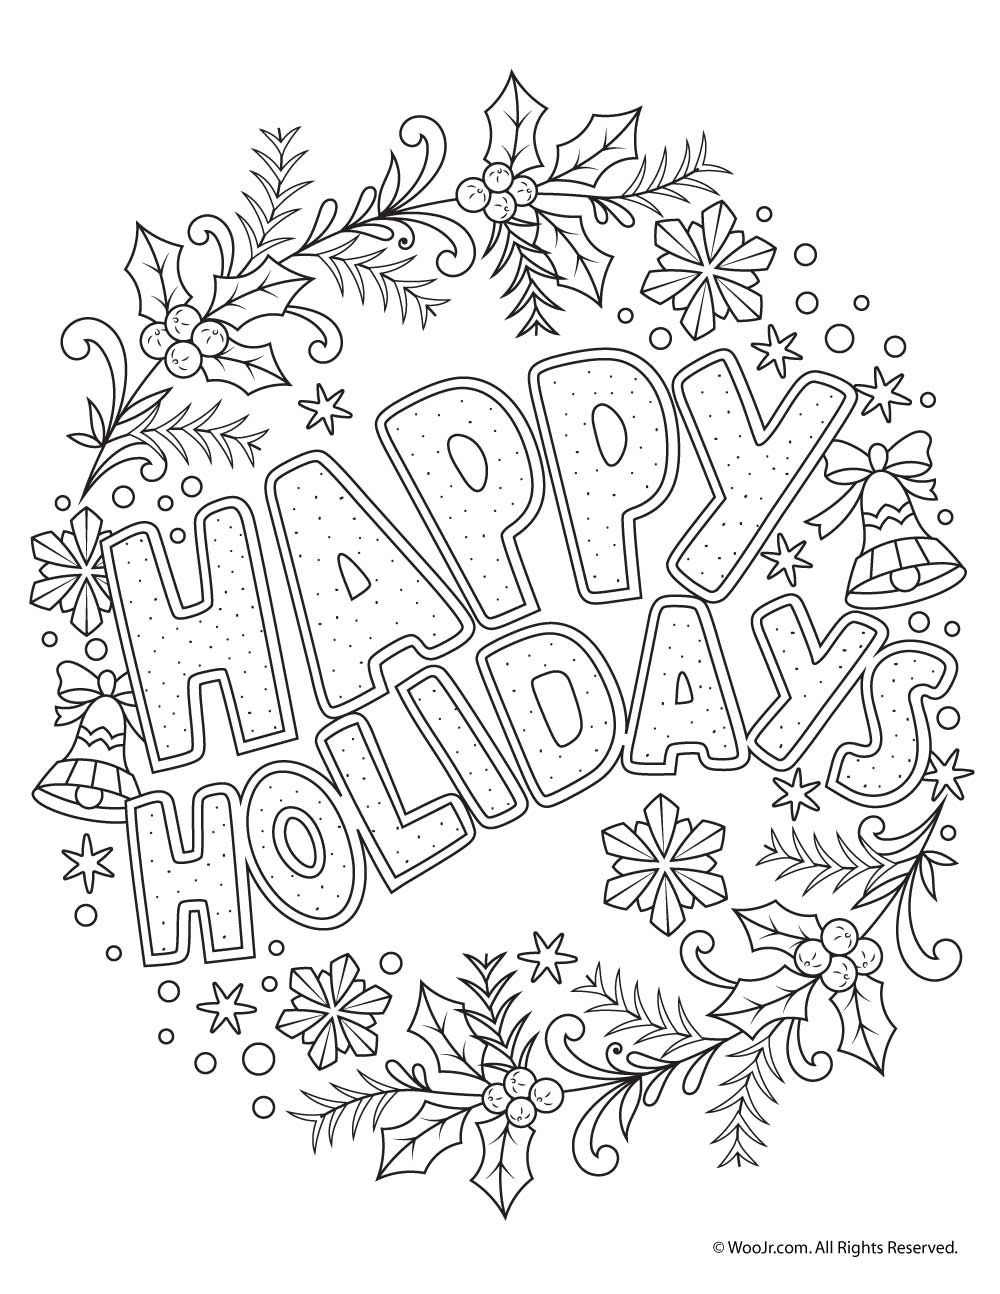 Beautiful Printable Christmas Adult Coloring Pages   Coloring Pages - Free Printable Christmas Coloring Pages